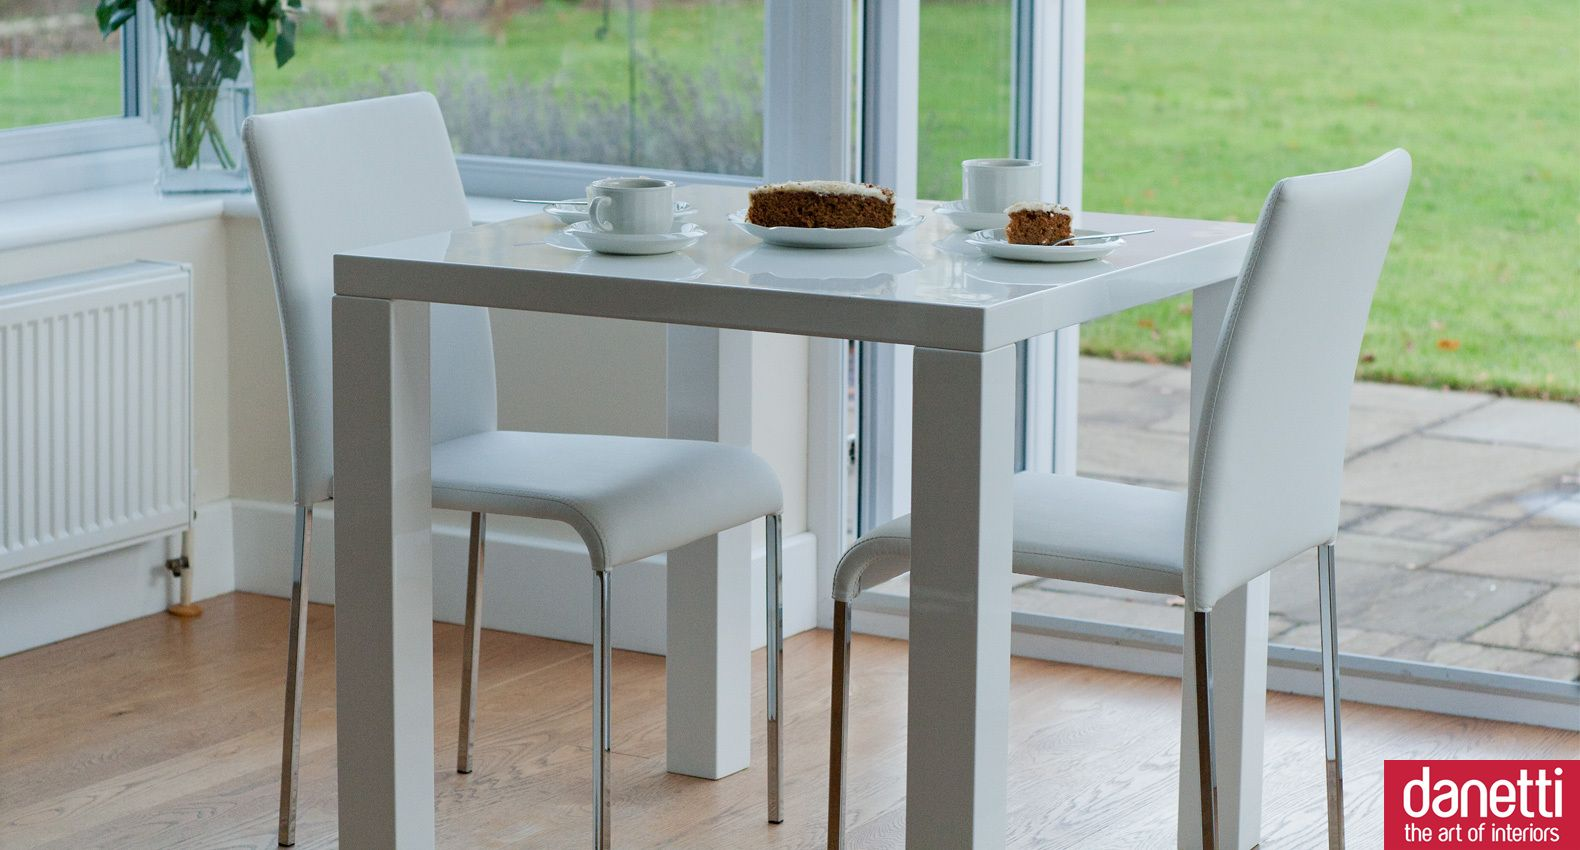 a modern white gloss kitchen dining set the square table can seat 2 to 4 - White Gloss Kitchen Table